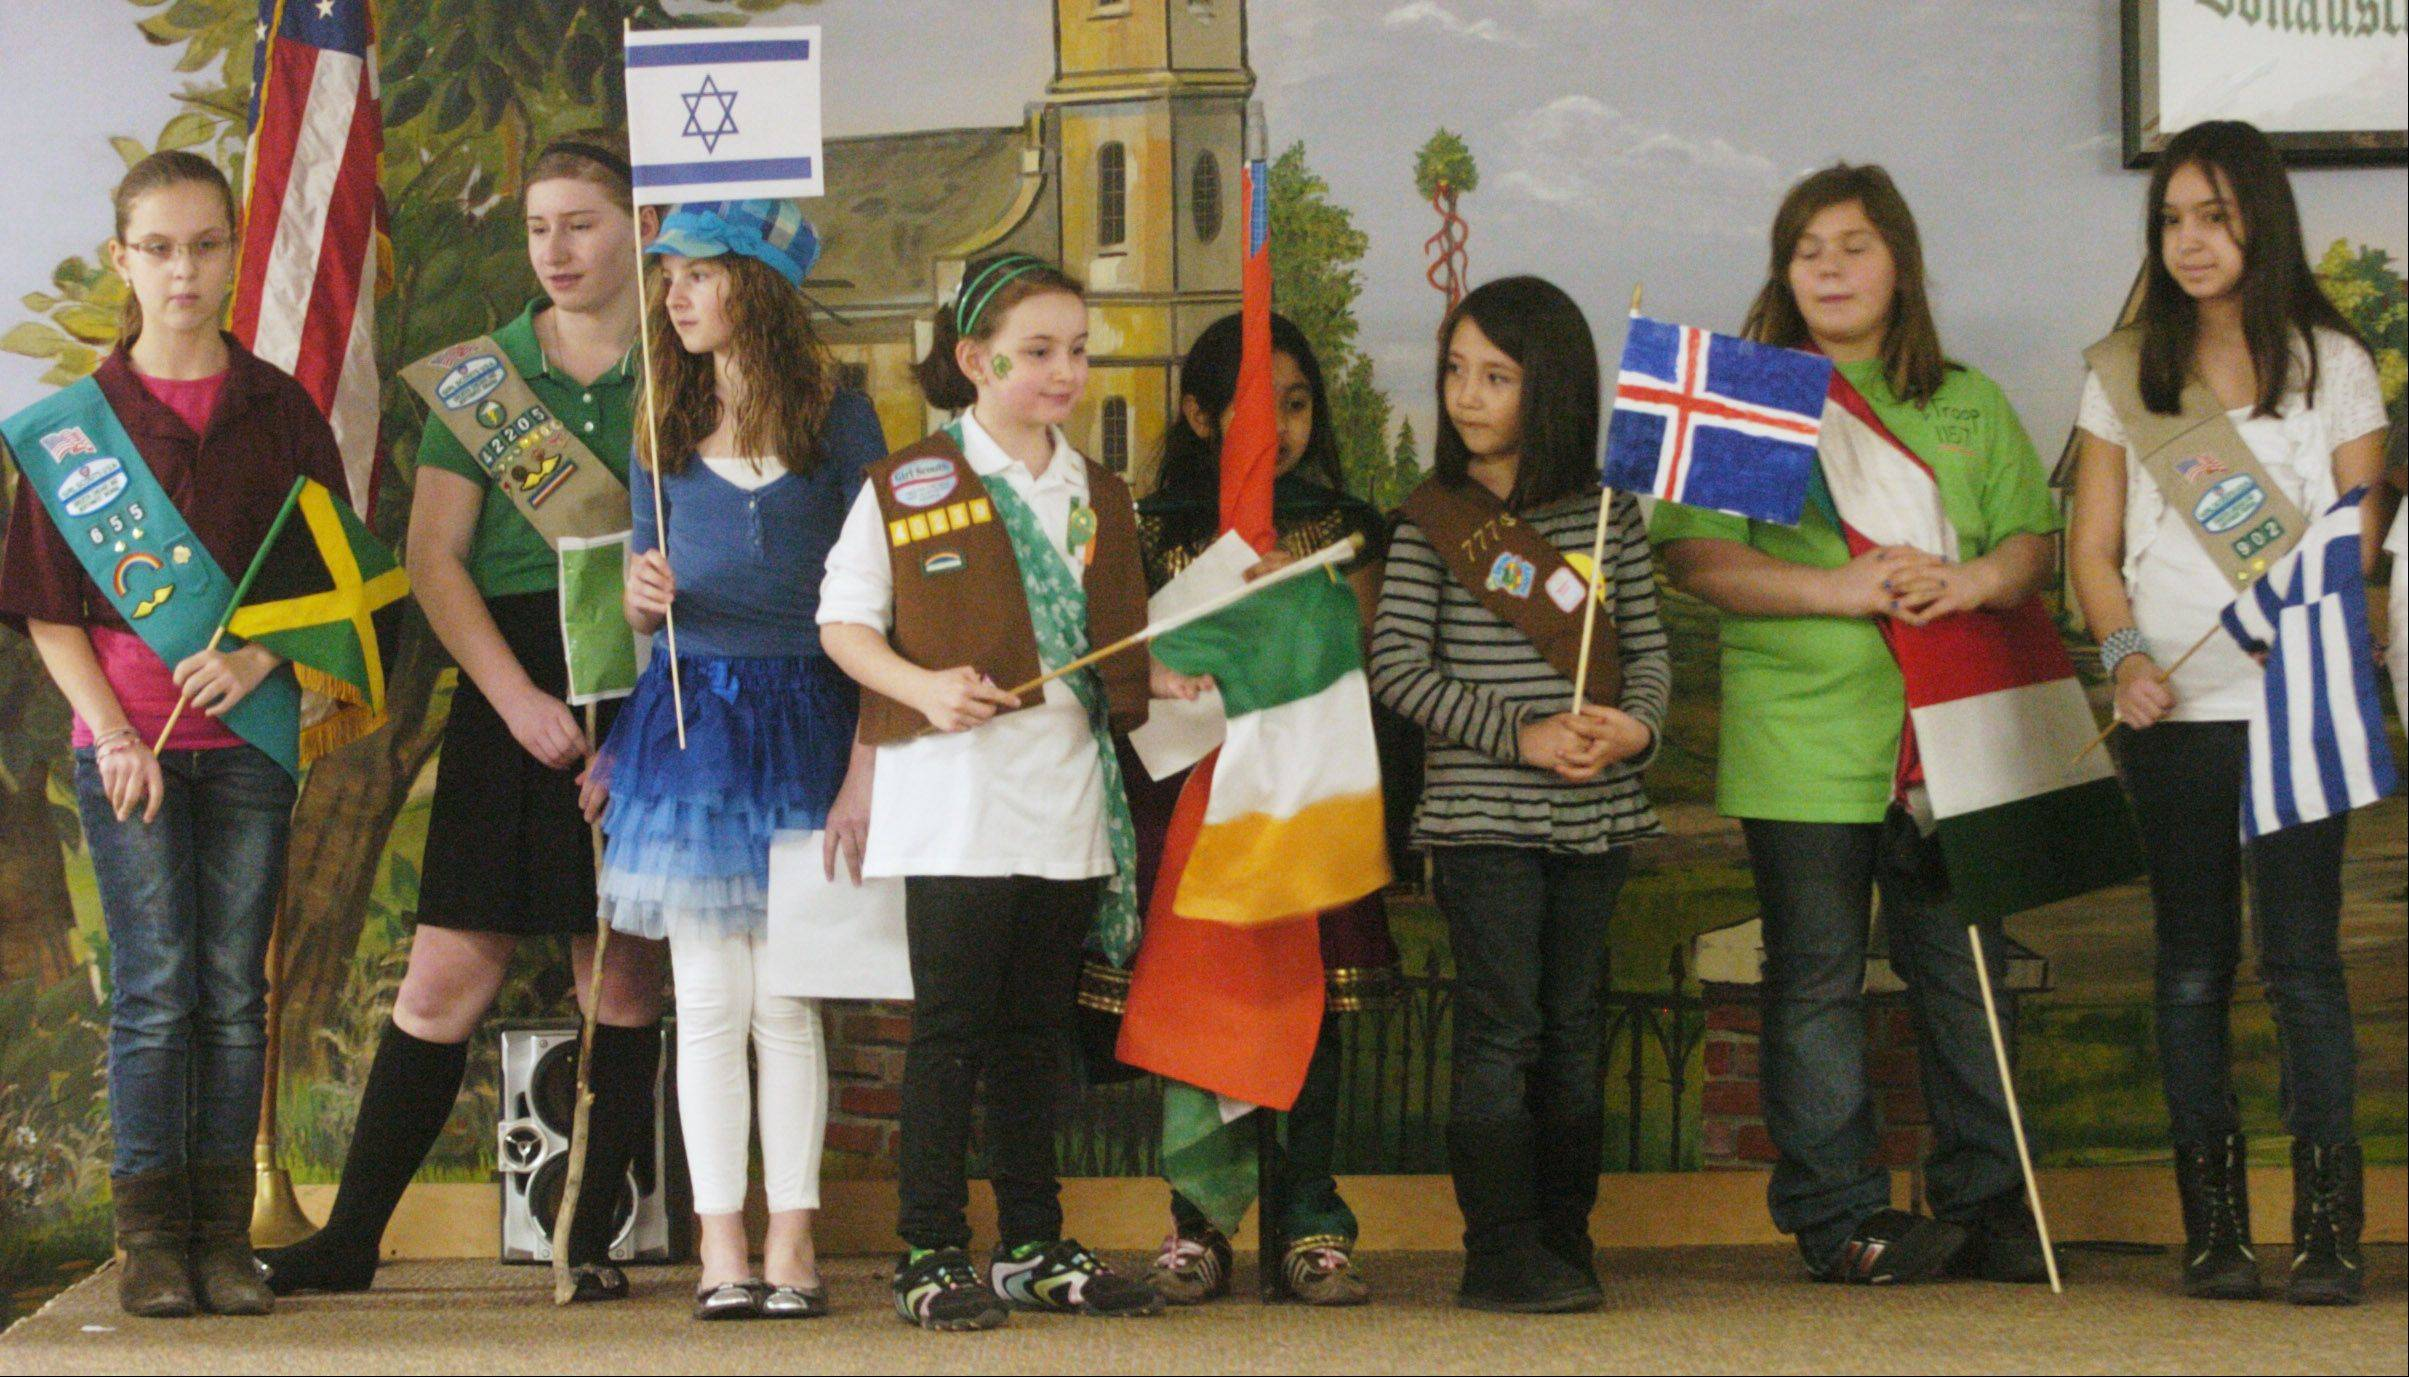 Scouts line up to present the flags of 24 nations during Girl Scouts World Thinking Day held last week at the Society of the Dunabe Swabians in Des Plaines. The Girl Scouts mark their 100th anniversary today.